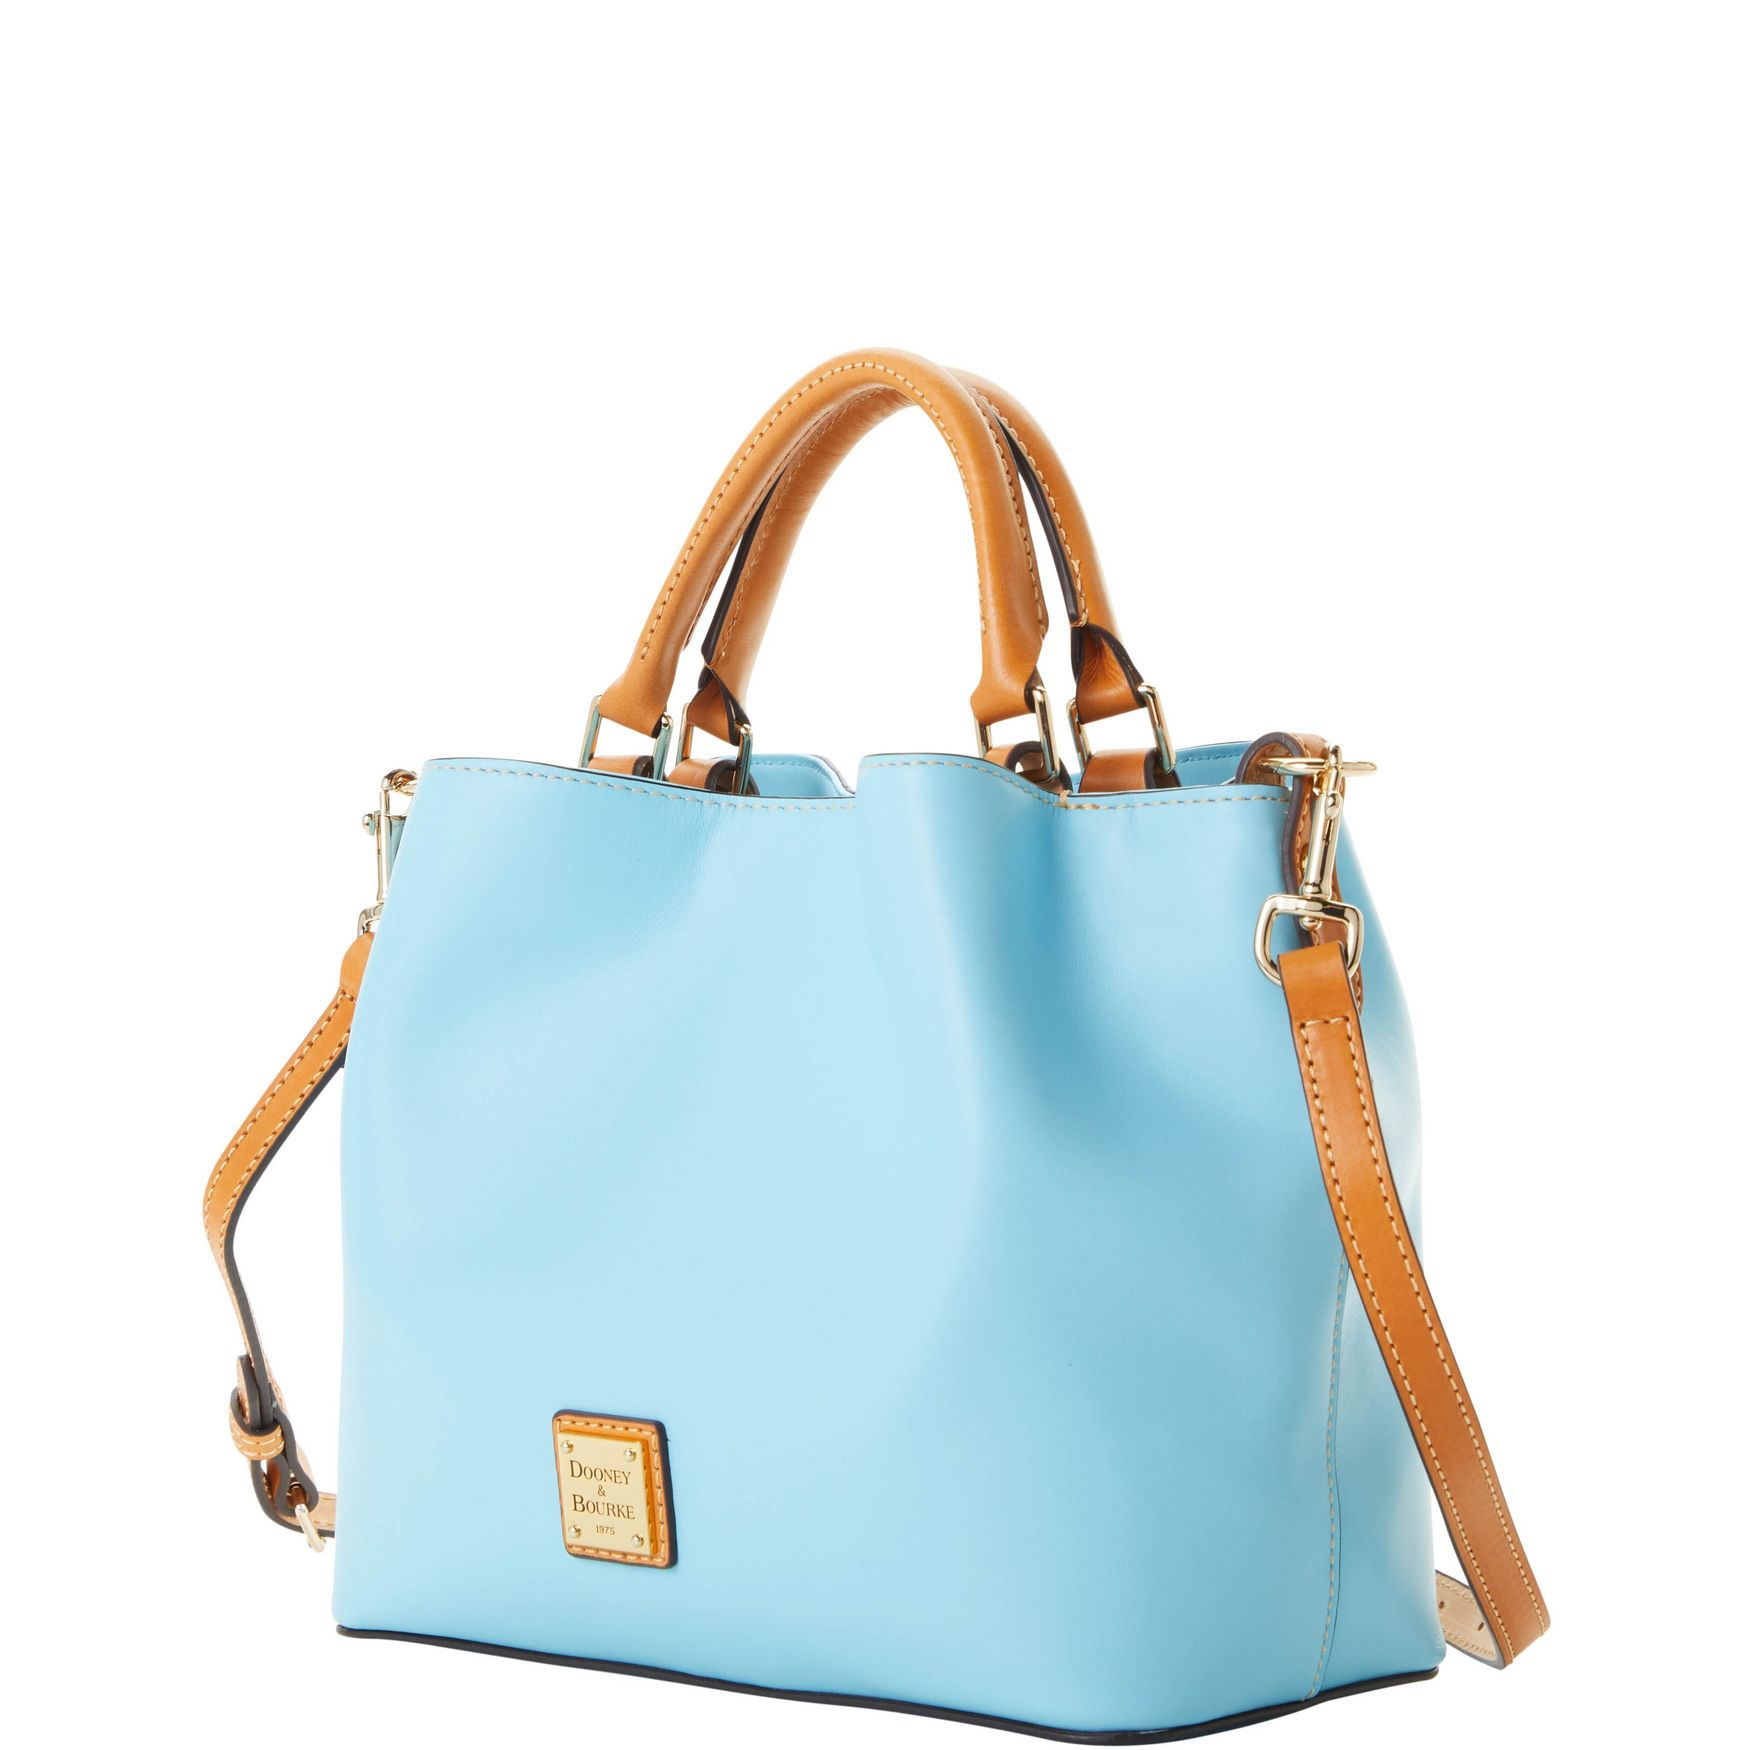 Dooney-amp-Bourke-Wexford-Leather-Small-Brenna thumbnail 23